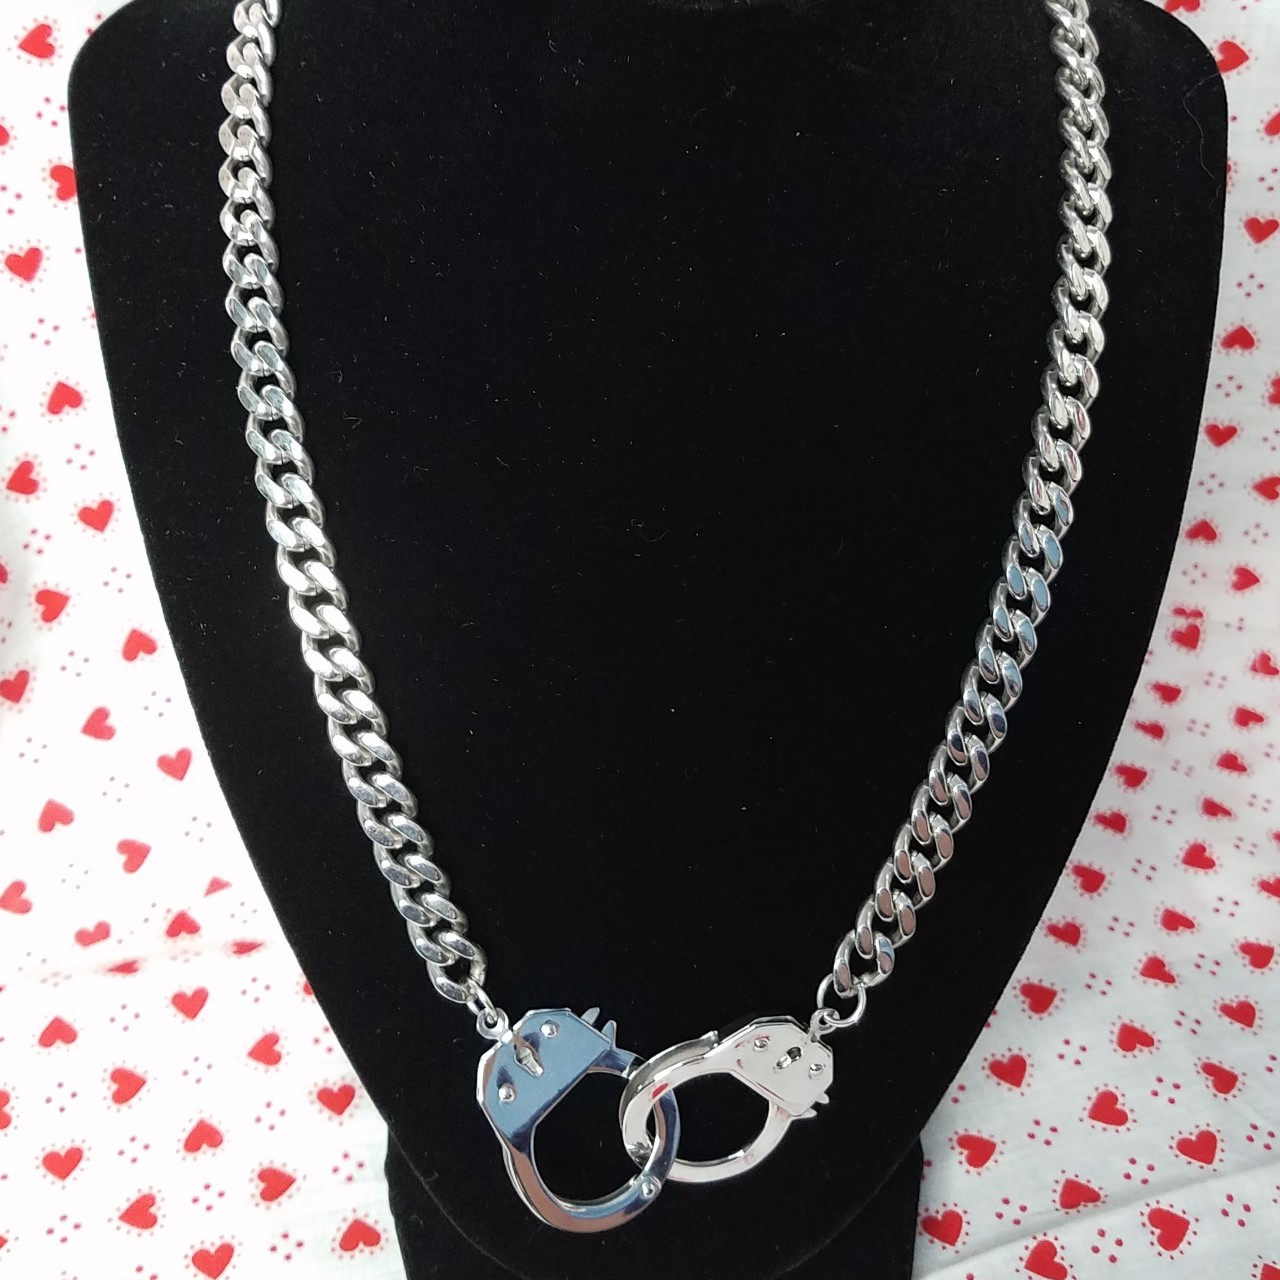 Product Image 1 - Stainless Steel Handcuff Necklace  This rad